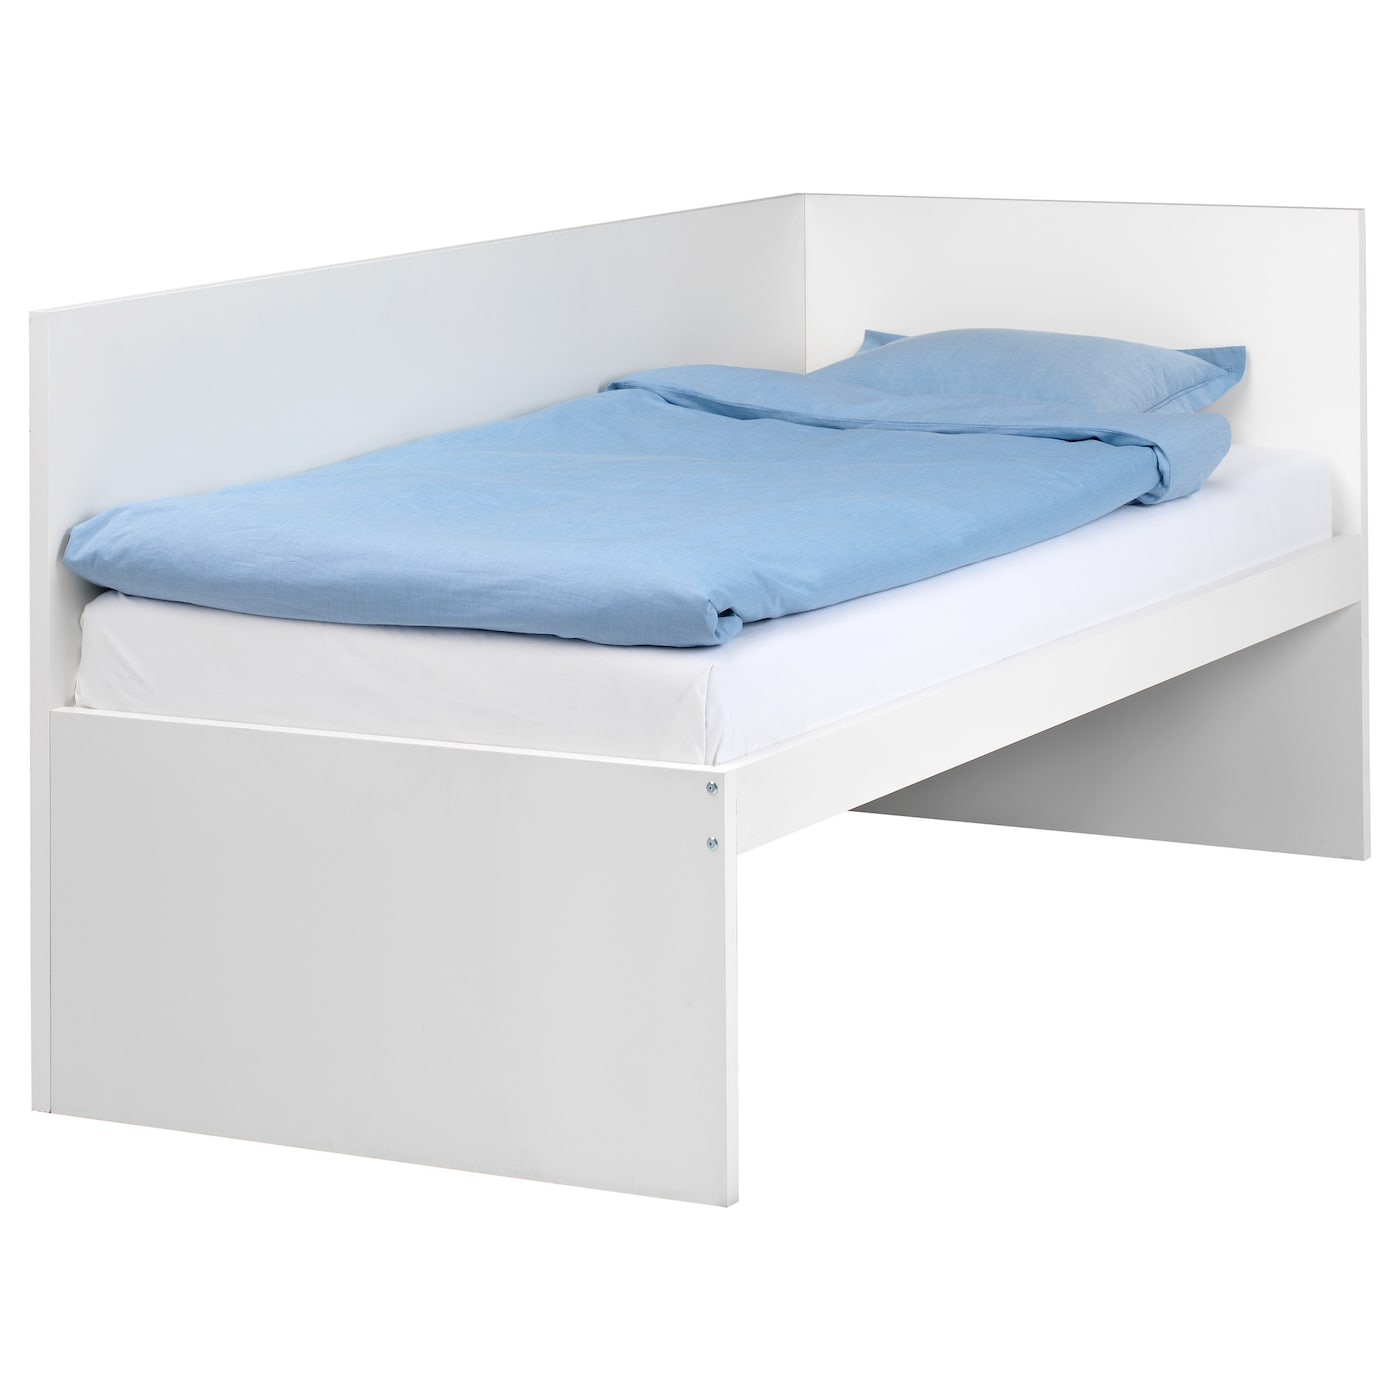 Flaxa bed frm w headboard slatted bd base white 90x200 cm for Lit 80x190 but